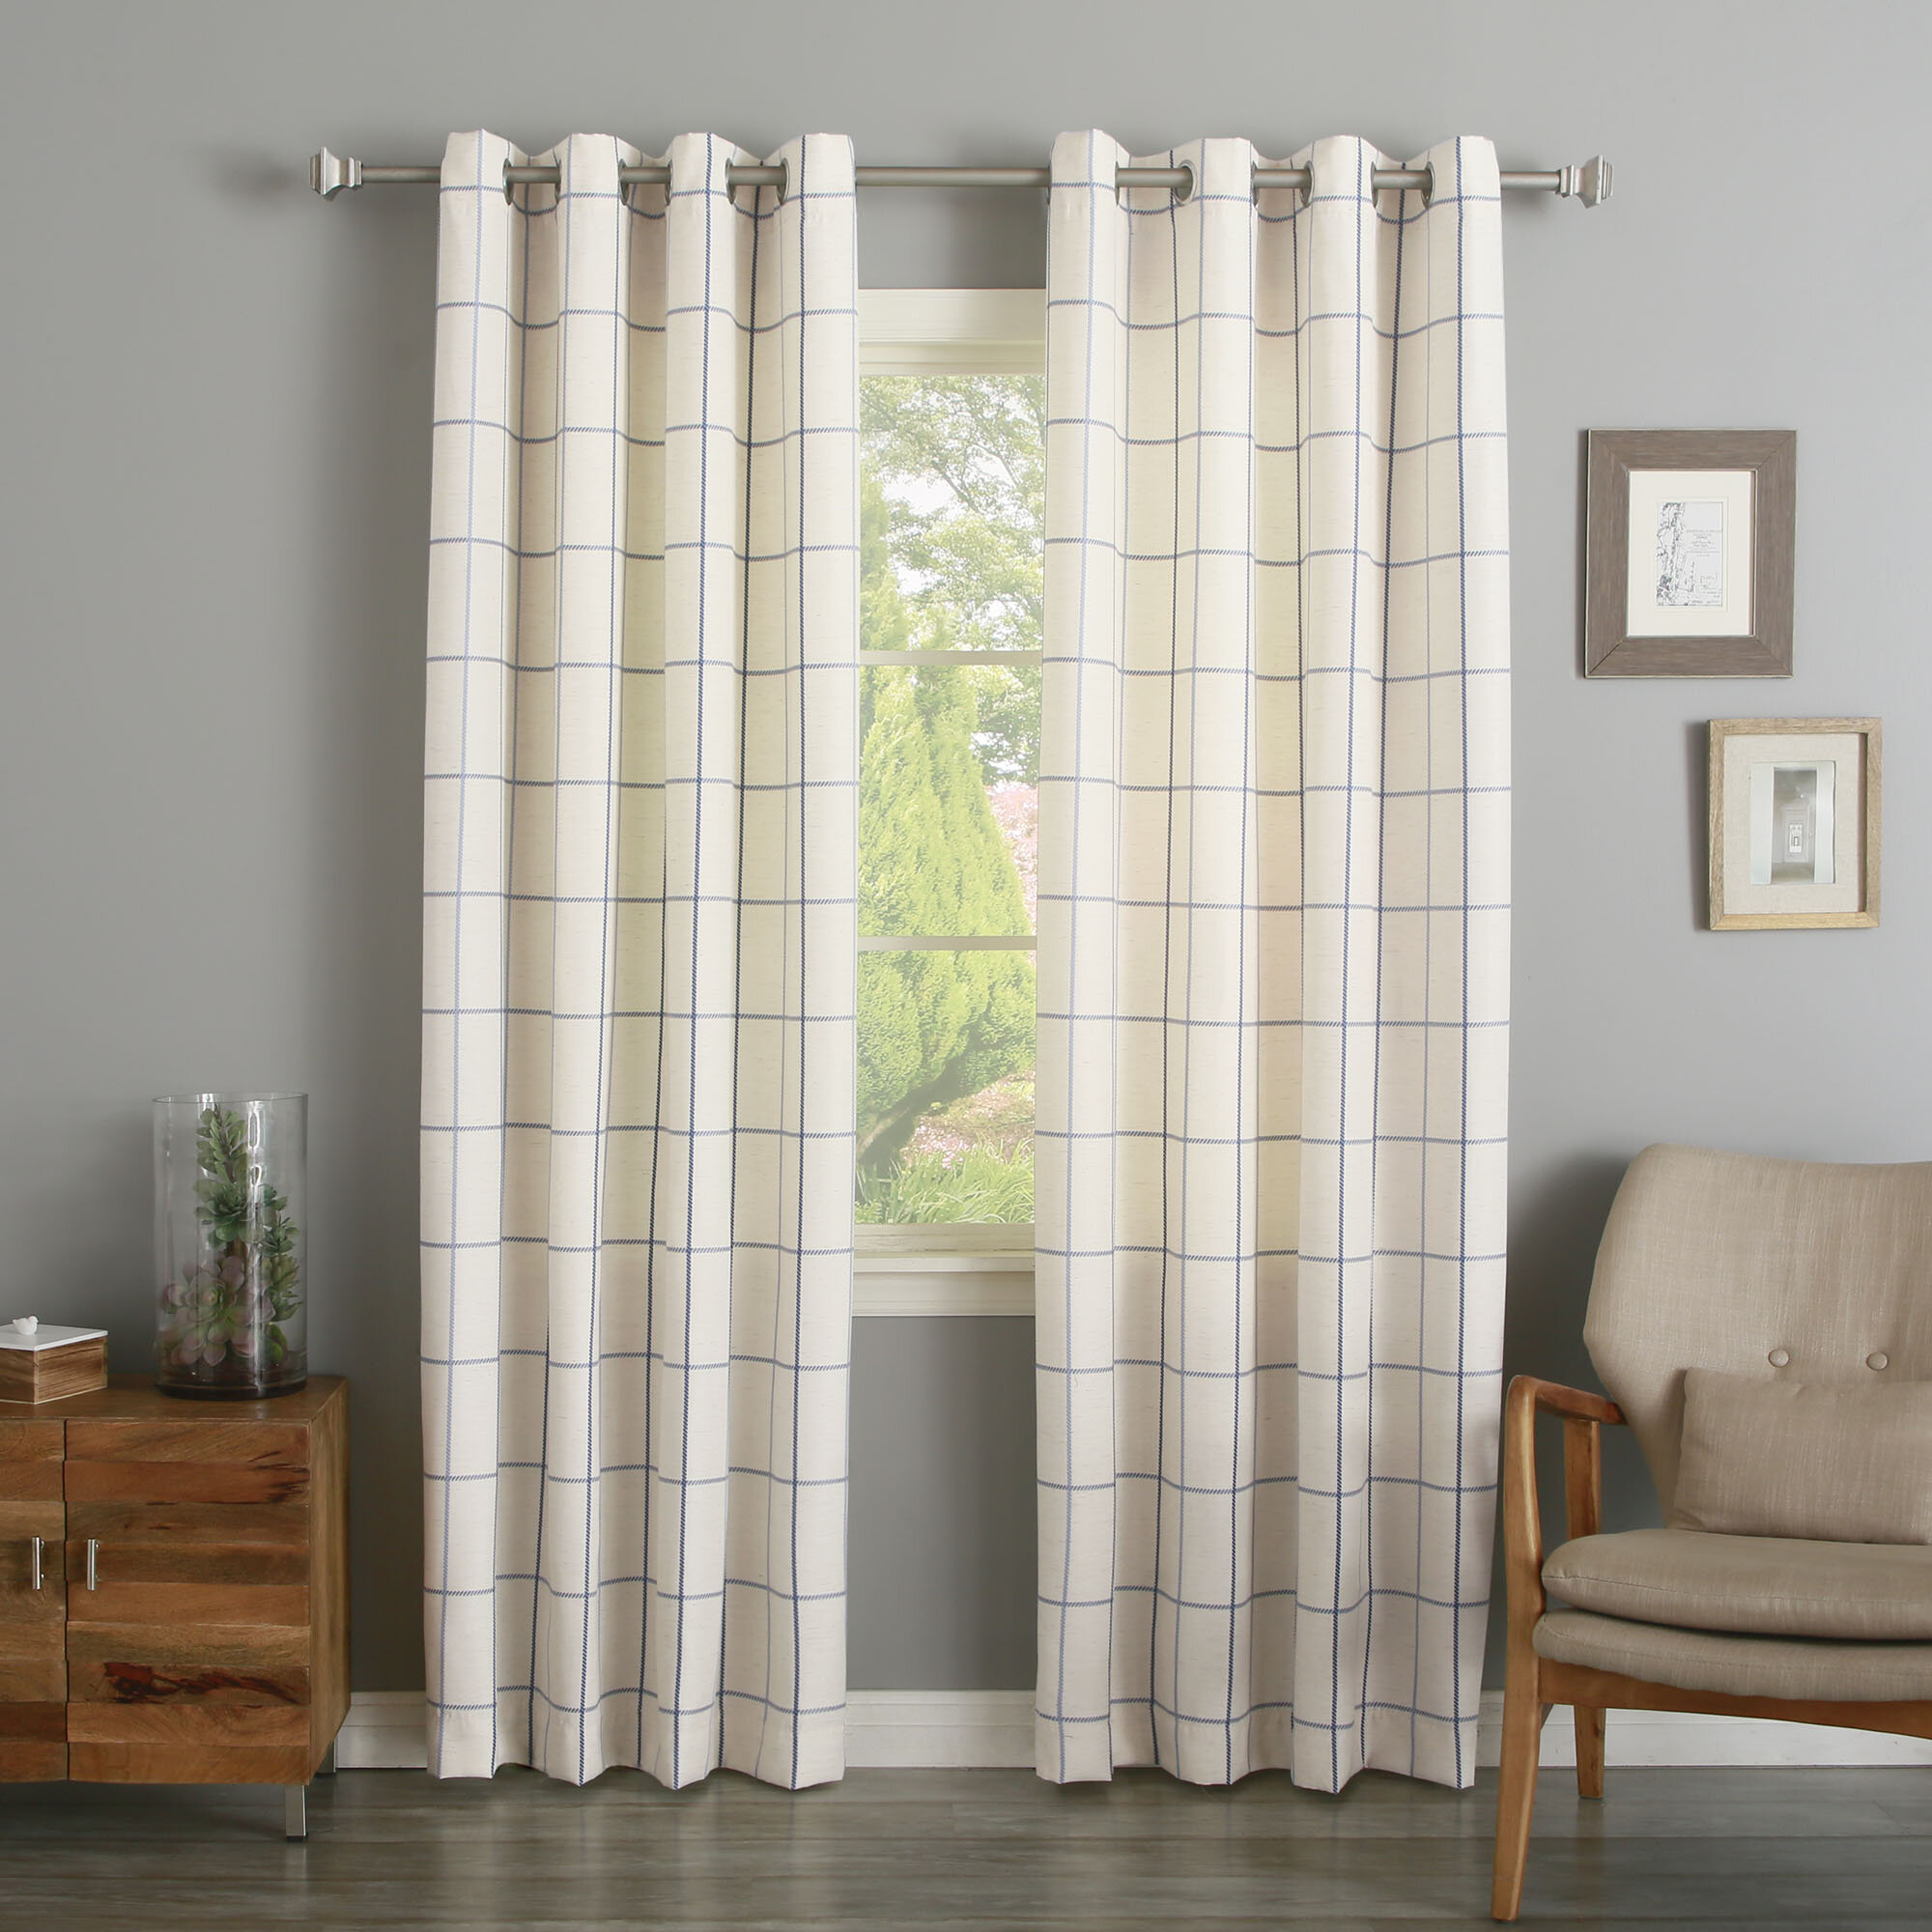 copy cotton panel or valance white curtain sheer voile handmade of panels products polyester